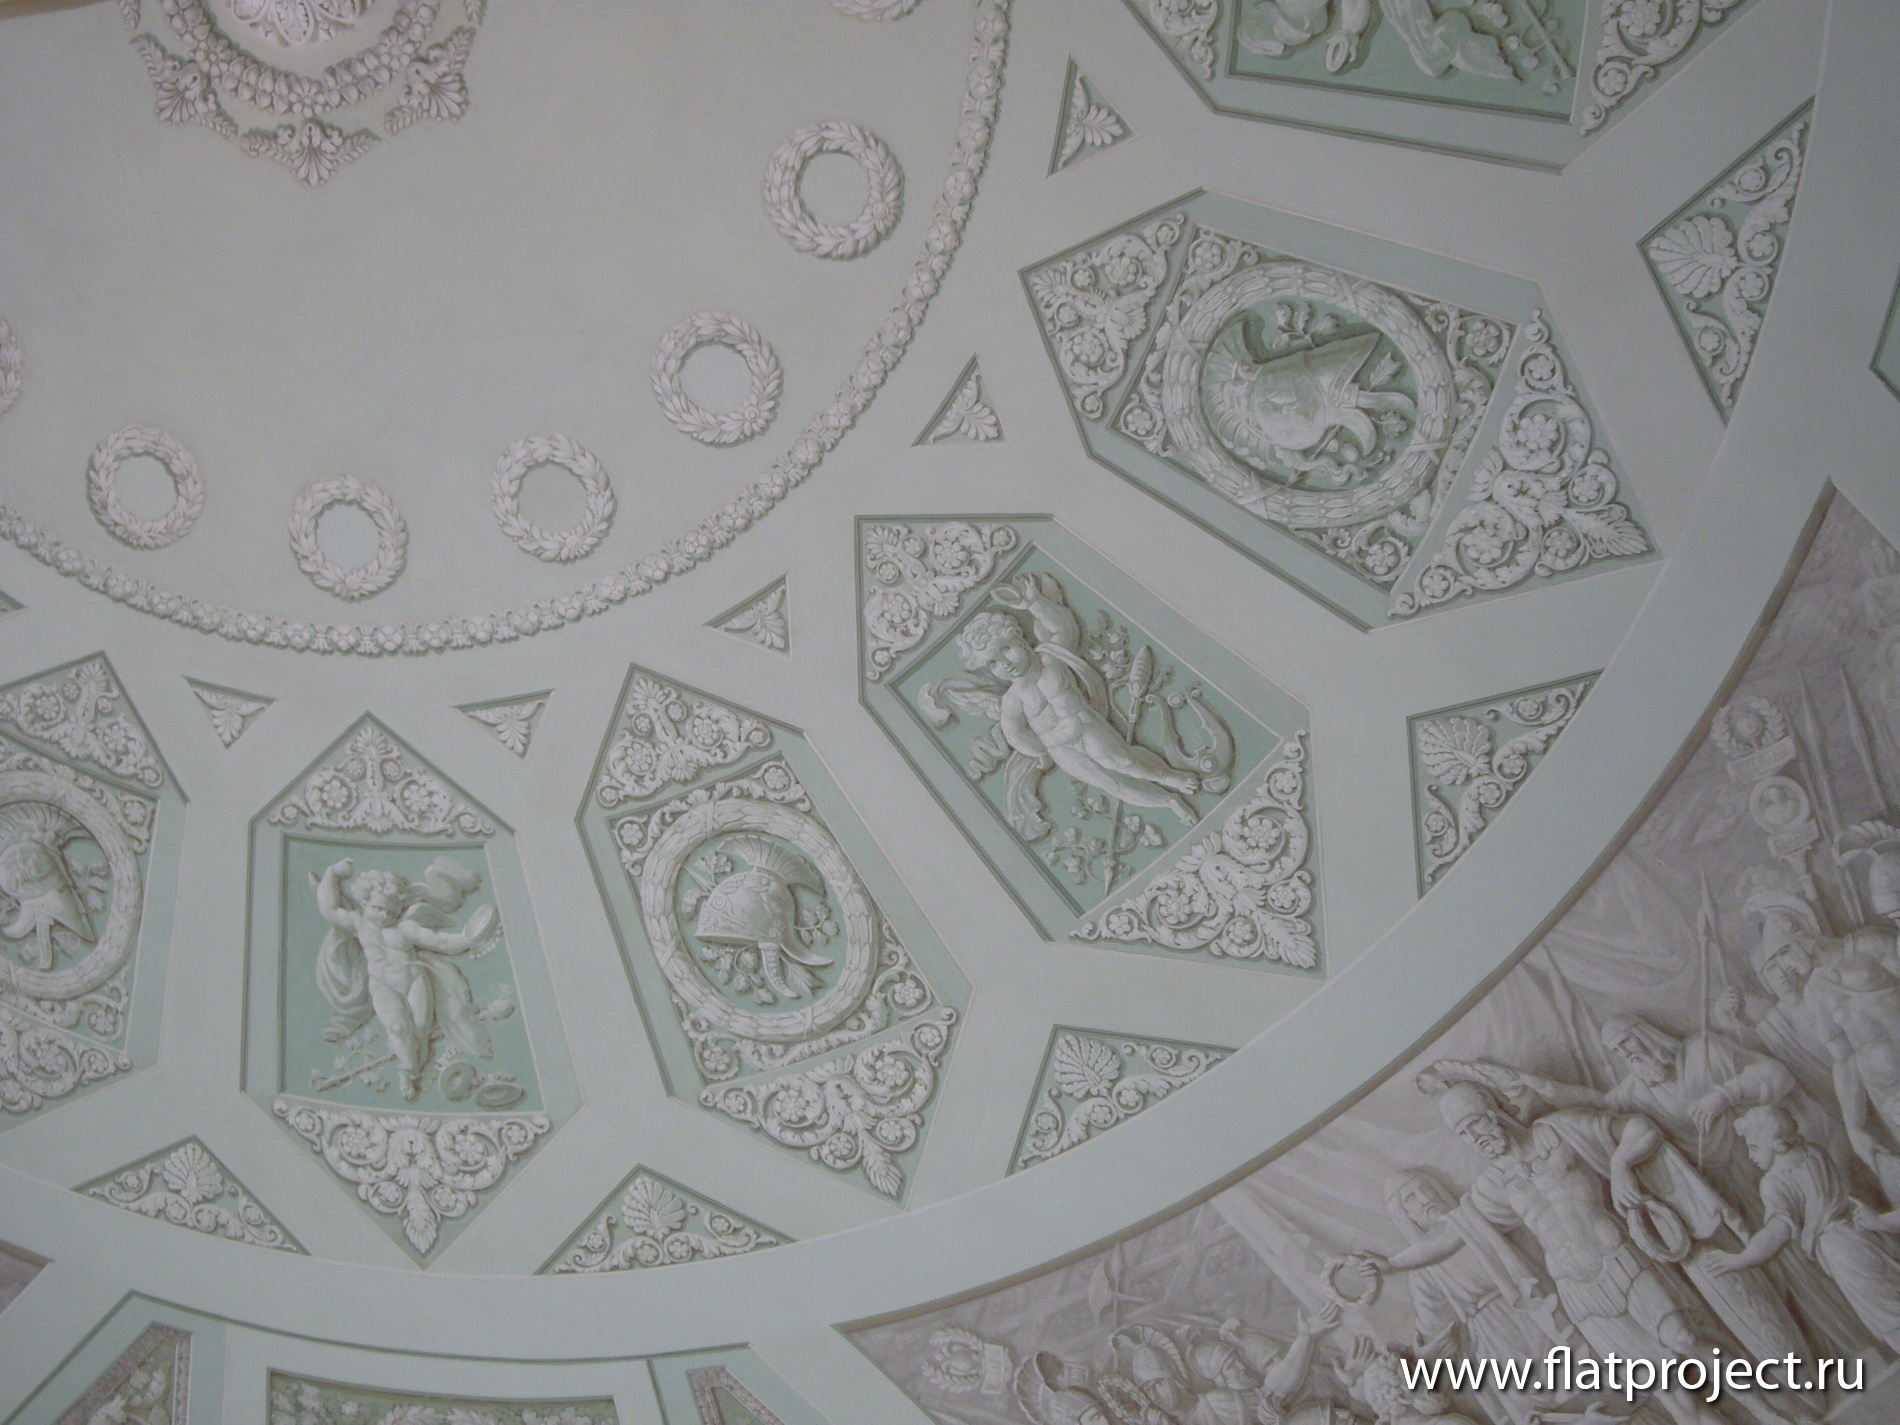 The State Russian museum interiors – photo 20